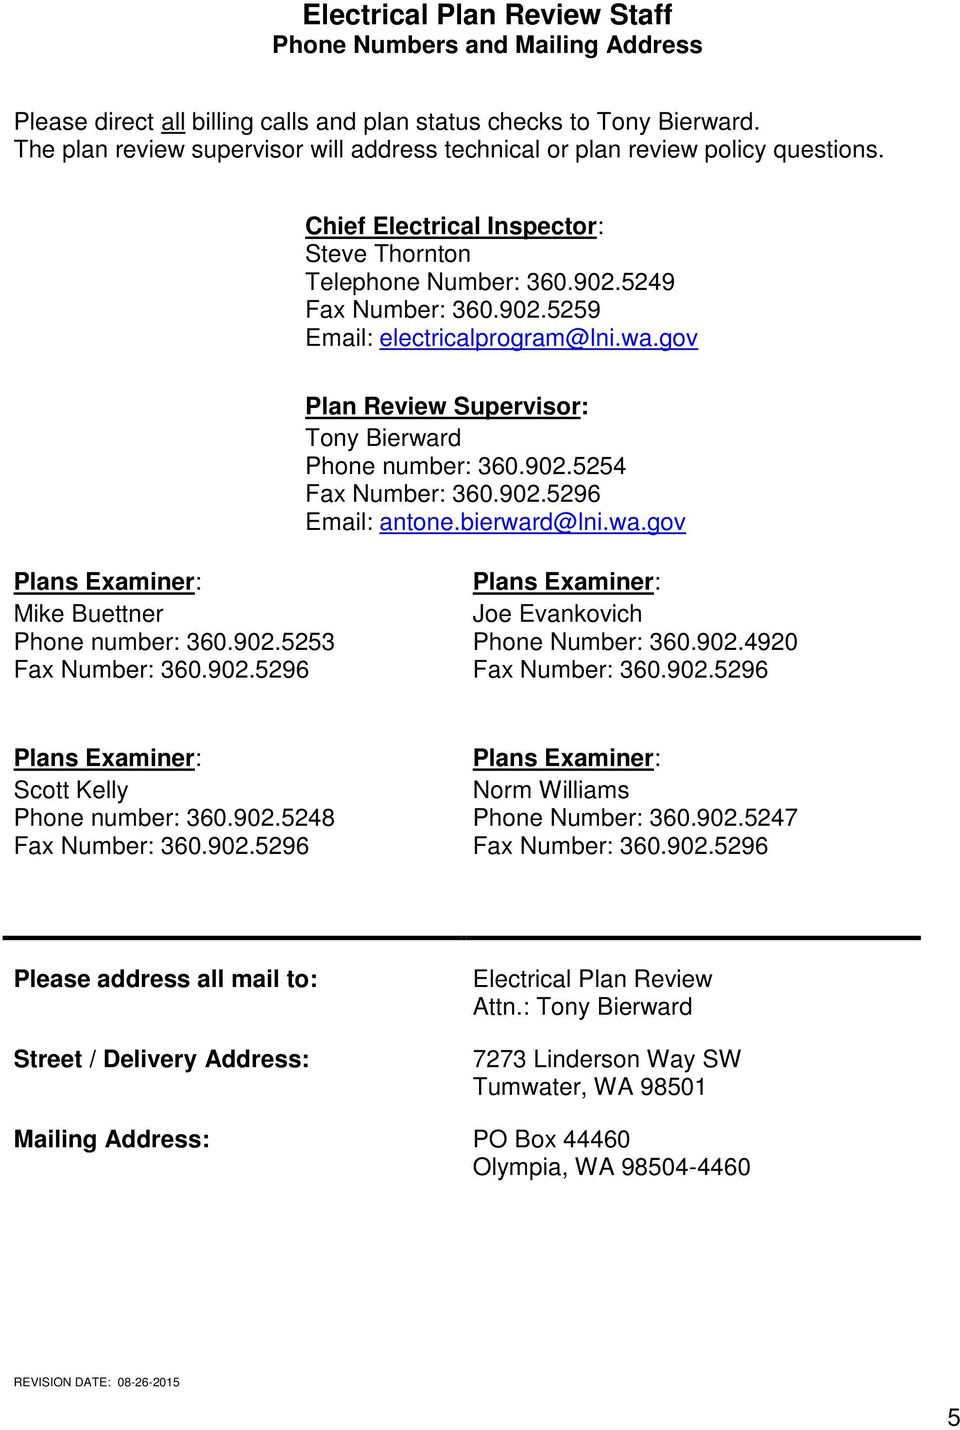 medium resolution of electrical plan review submittal guide pdfwa gov plan review supervisor tony bierward phone number 360 902